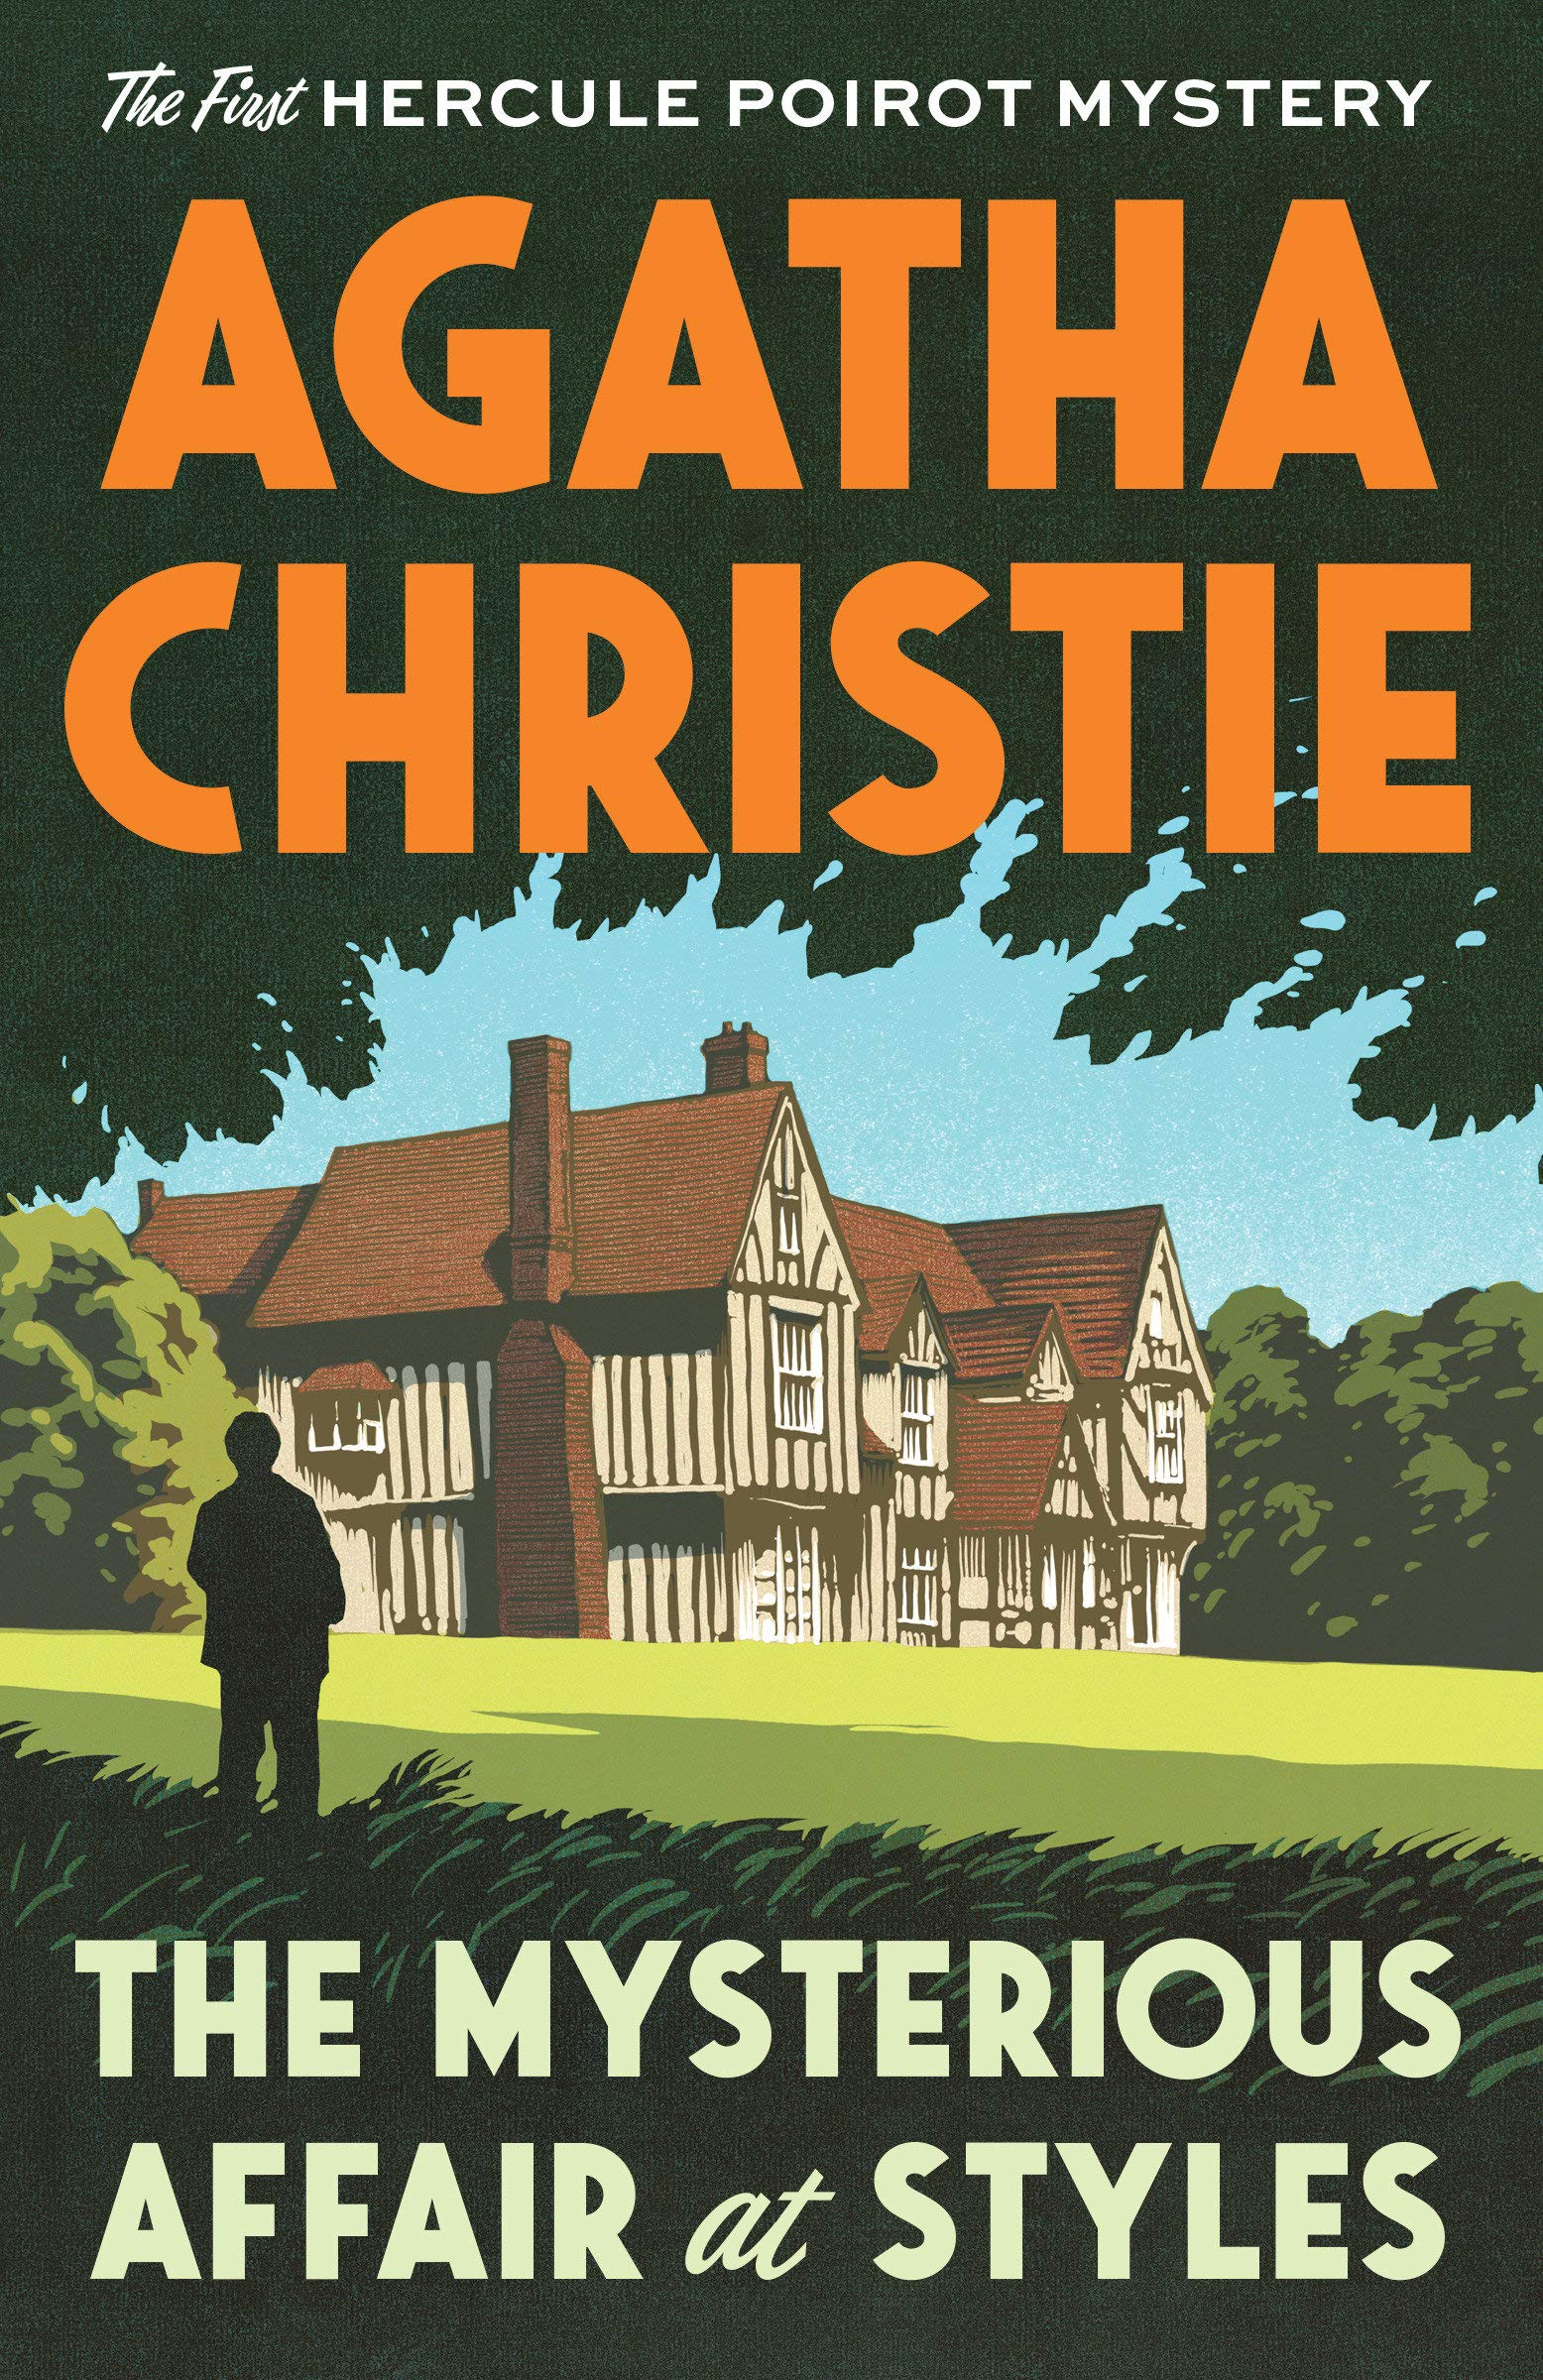 Amazon.com: The Mysterious Affair at Styles: The First Hercule Poirot  Mystery (9780525565109): Christie, Agatha: Books